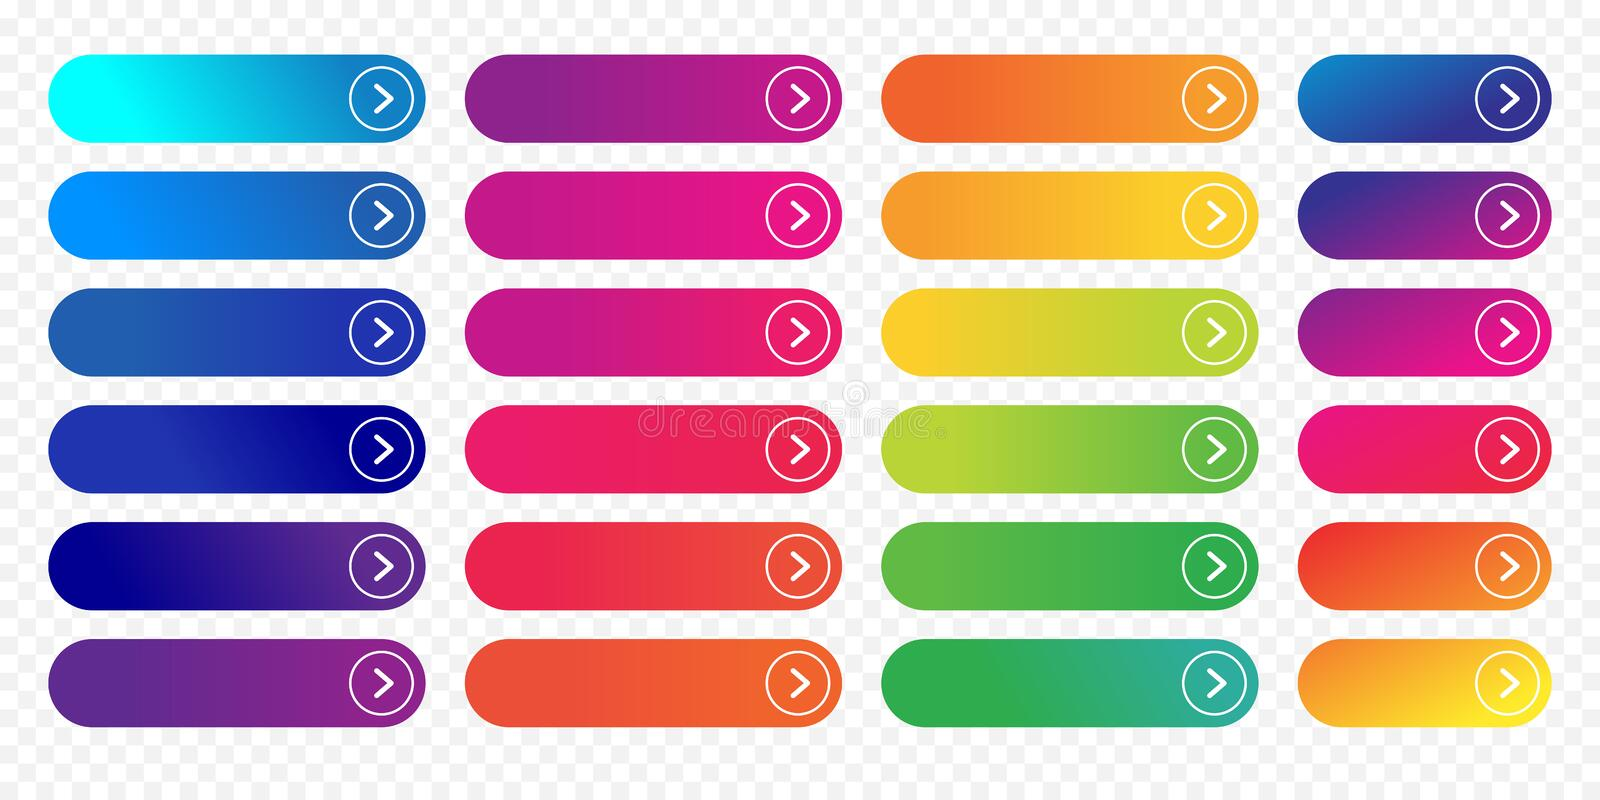 Web button flat design template next icon color gradient outline vector. Web buttons flat design template with color gradient and thin line outline style. Vector royalty free illustration